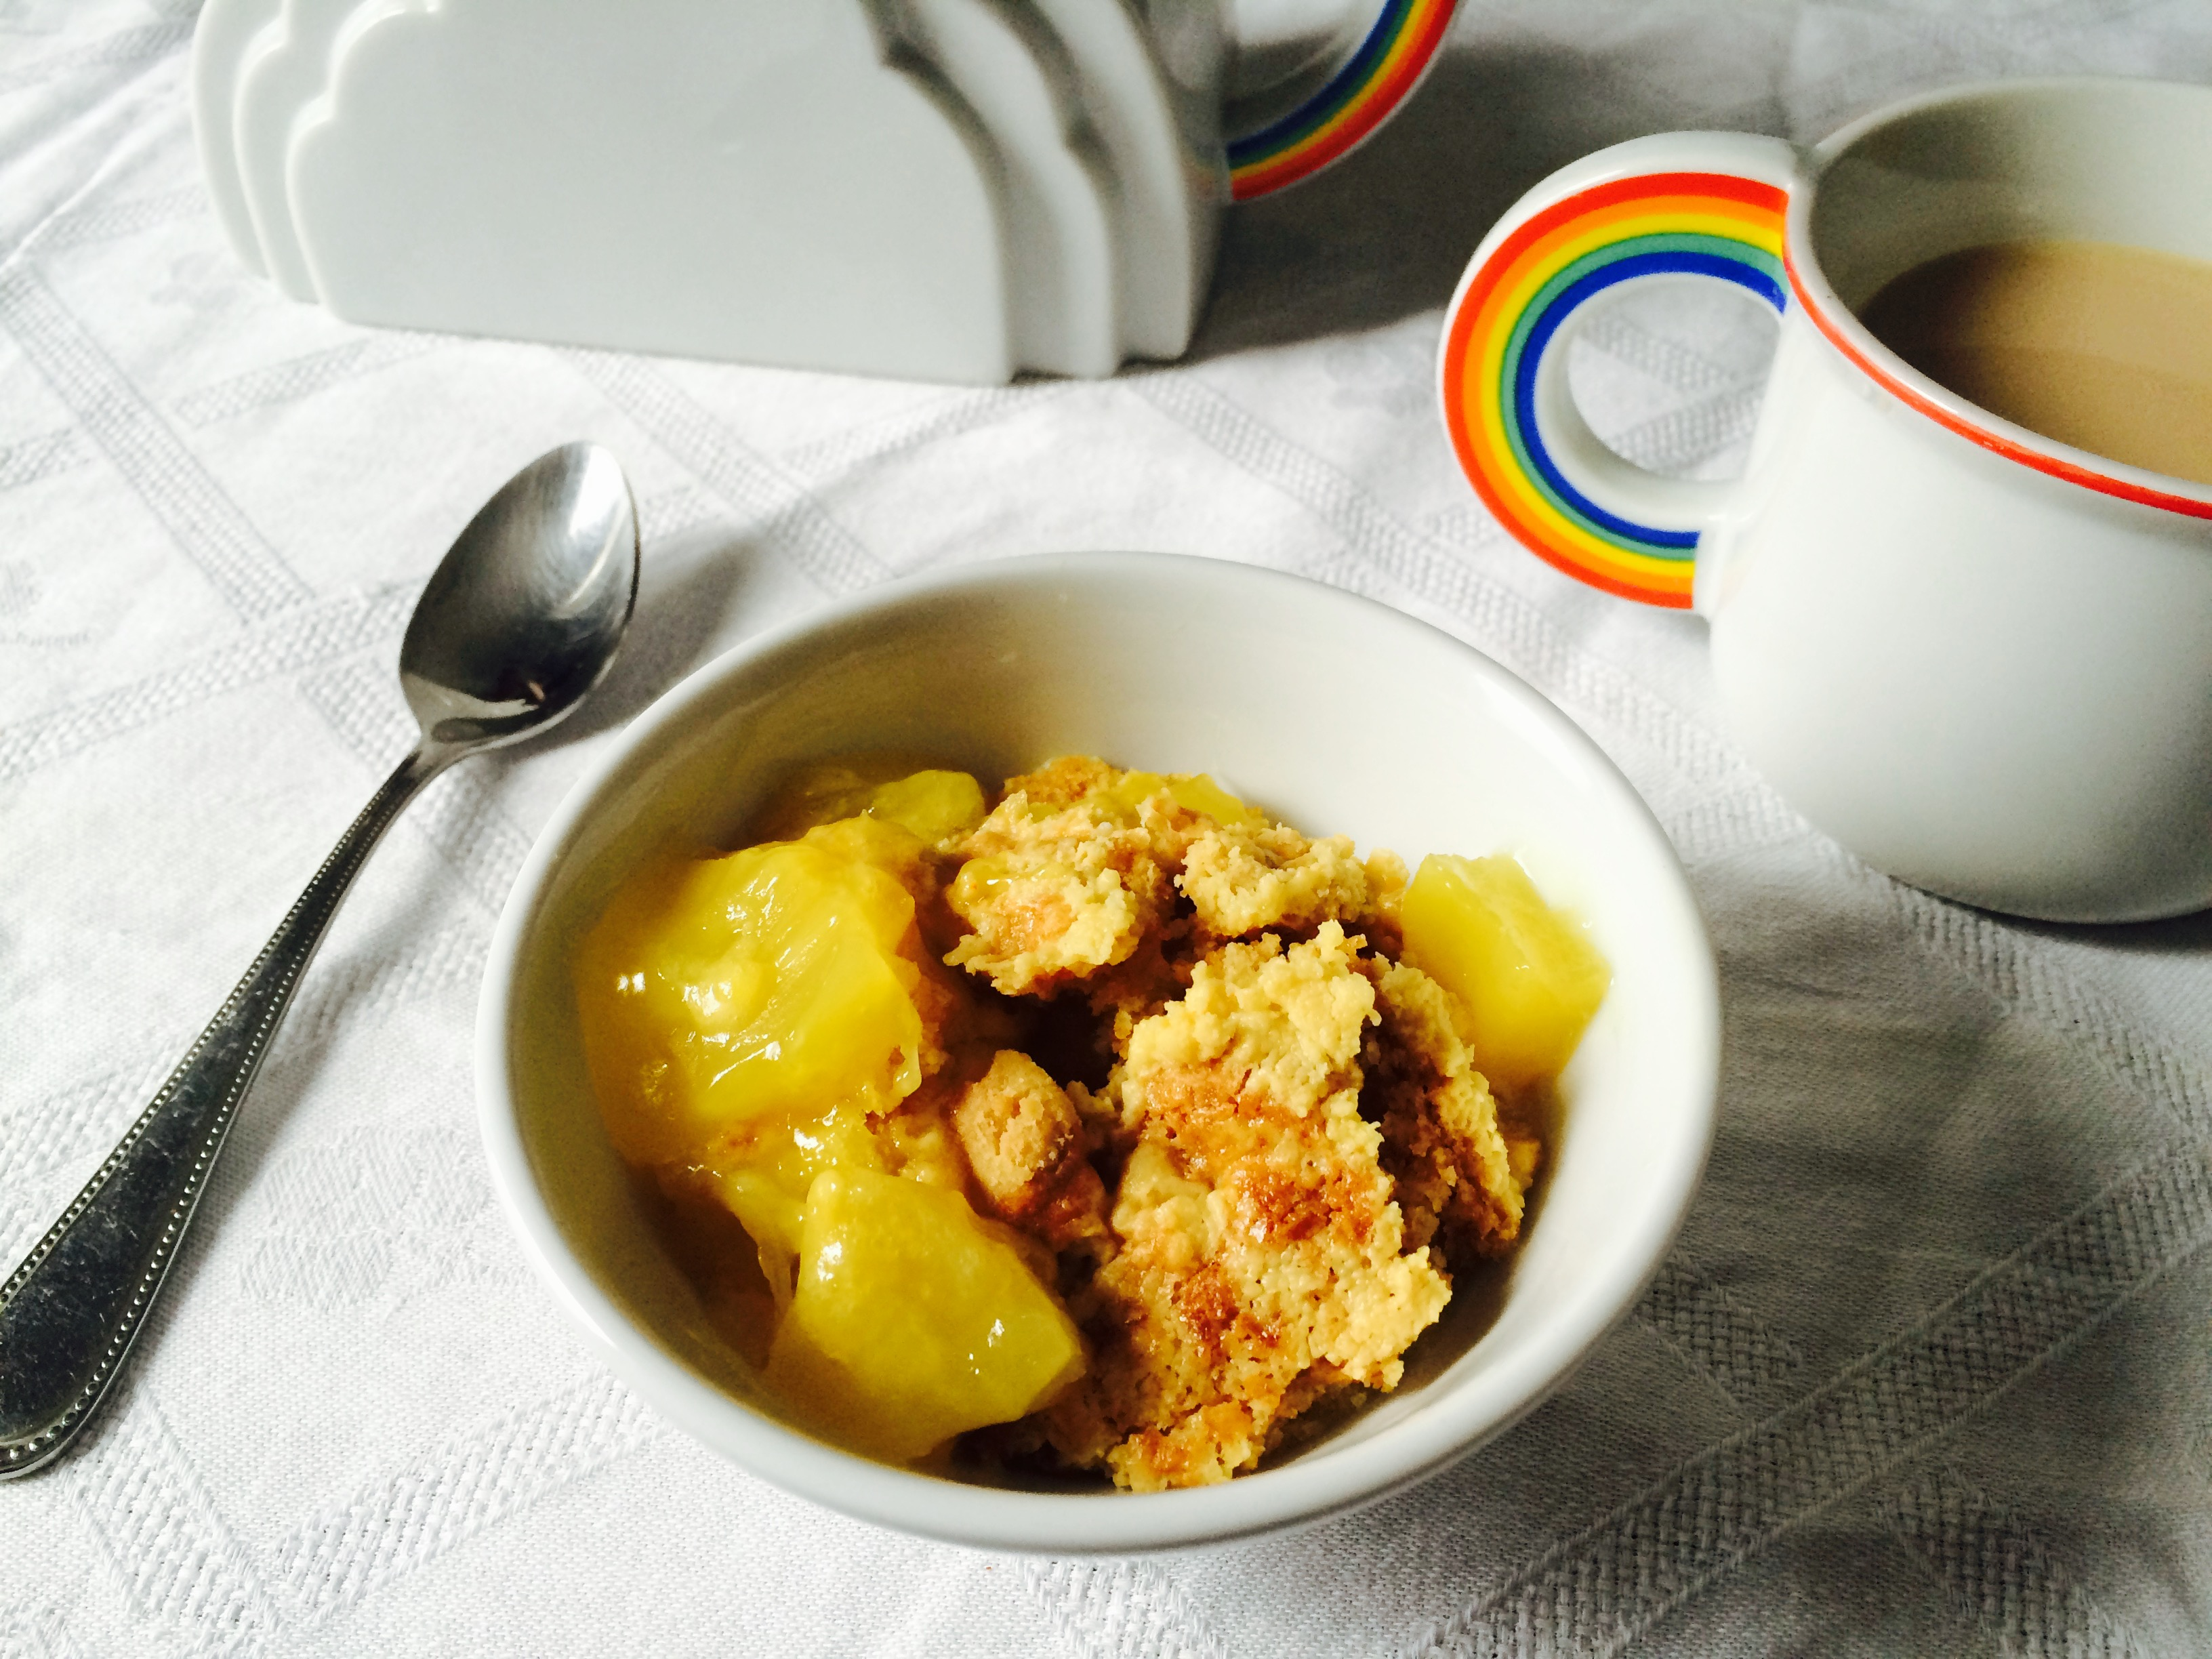 Lemon Pineapple Dump Cake